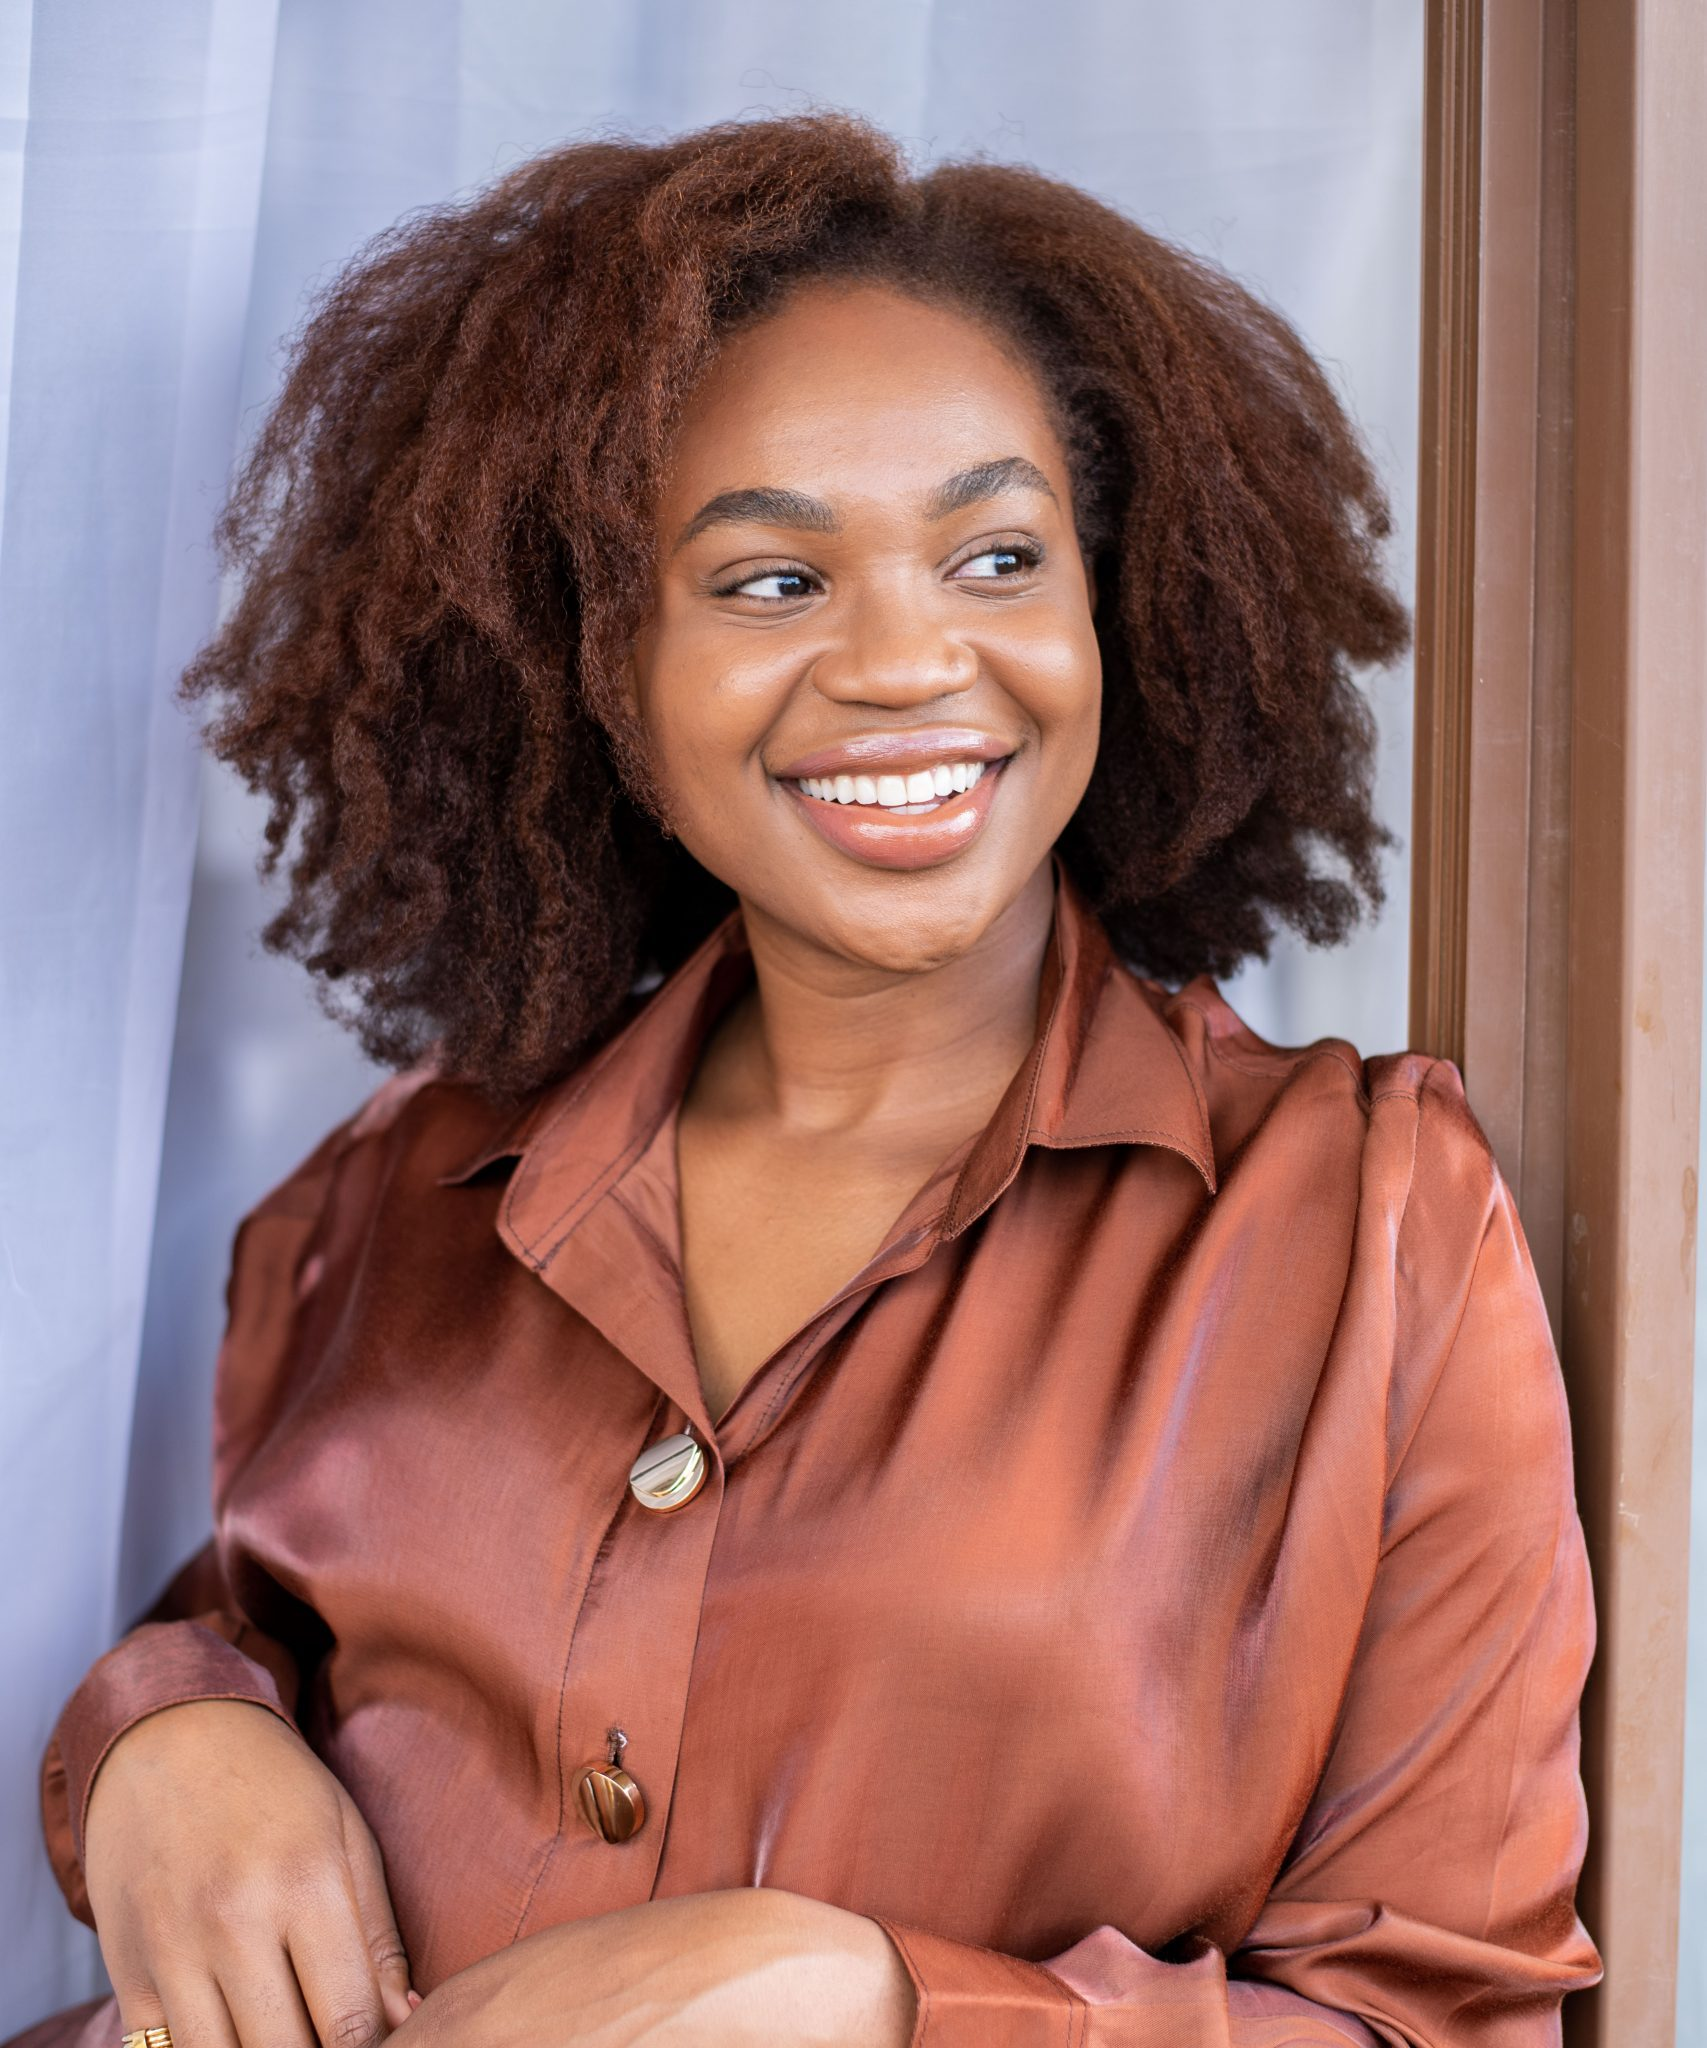 Ijema Kola smiling with afro and brown satin shirt - Earn extra money blog